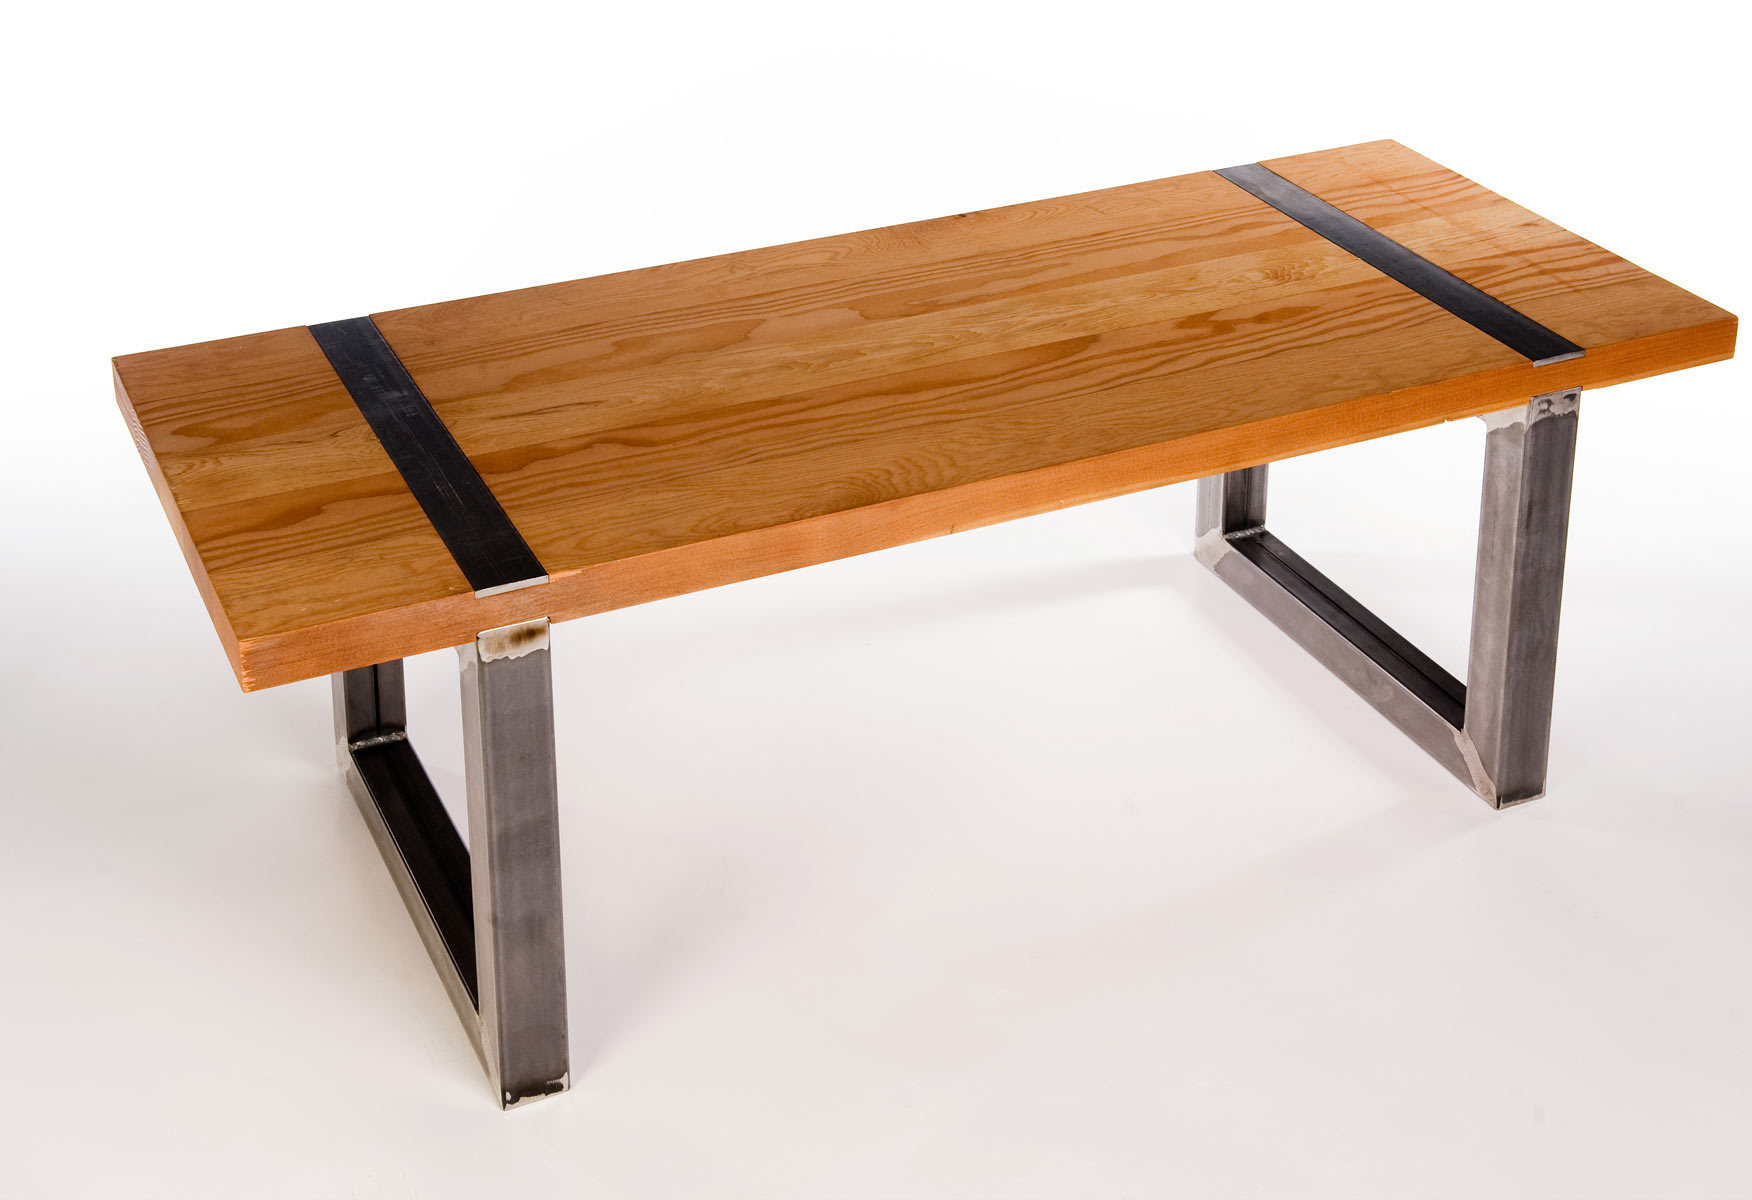 Bench made from waxed steel tube and plate with reclaimed Douglas Fir planks.  